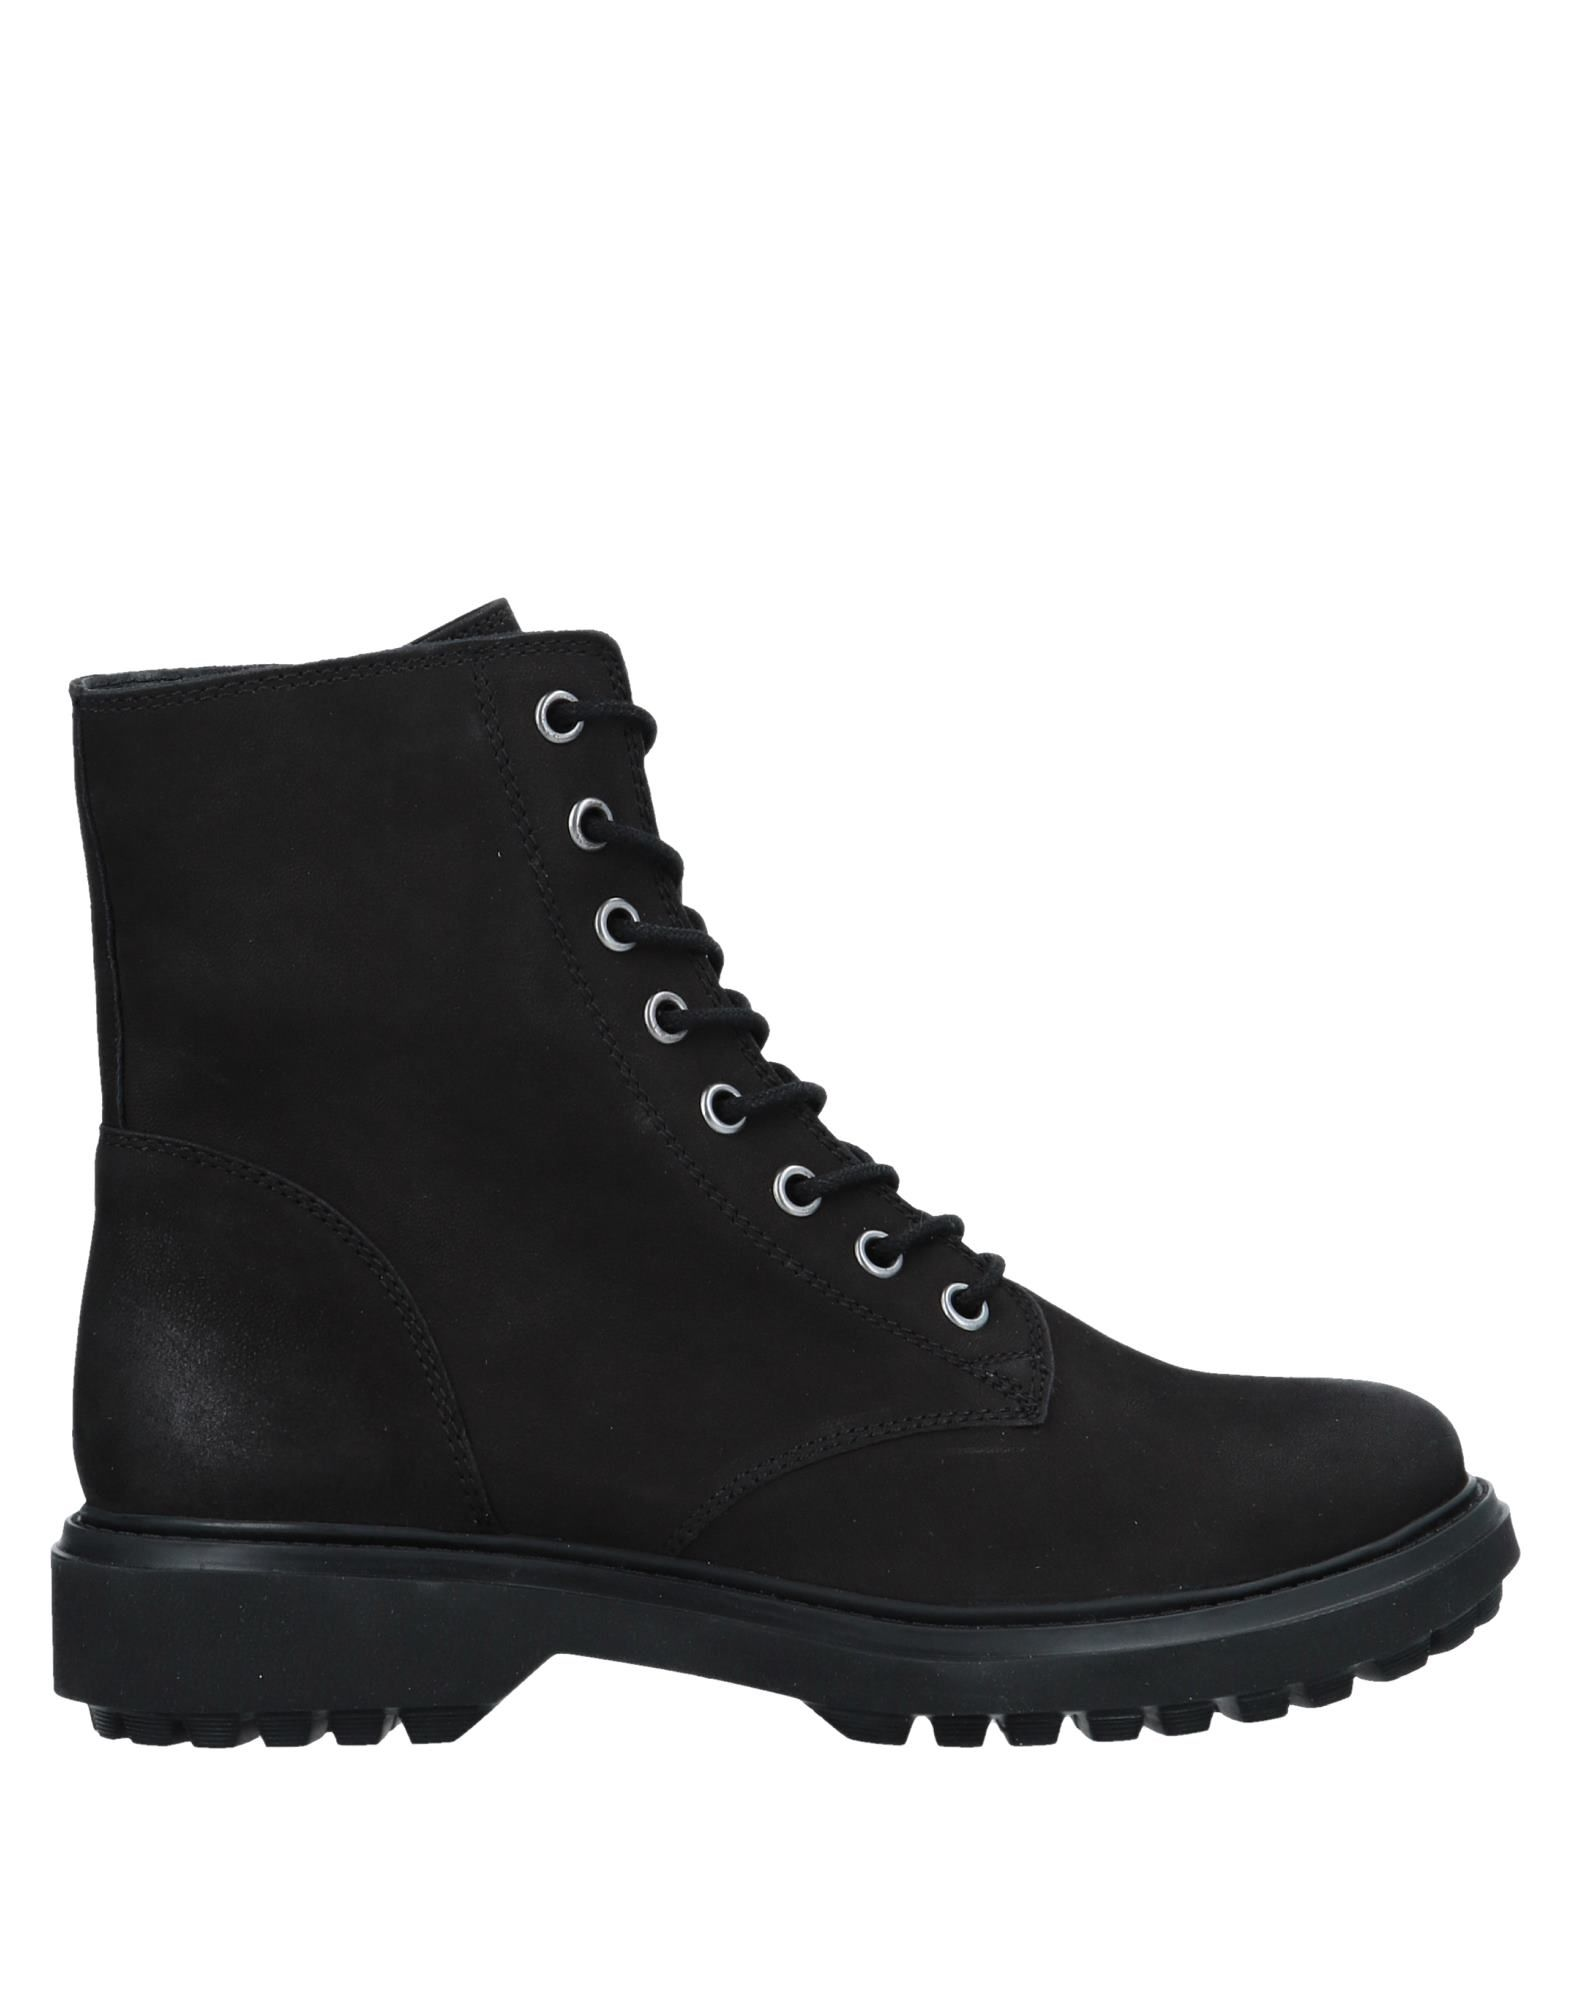 Geox Ankle Boot Boots - Women Geox Ankle Boots Boot online on  Australia - 11564675NU 3bf91e